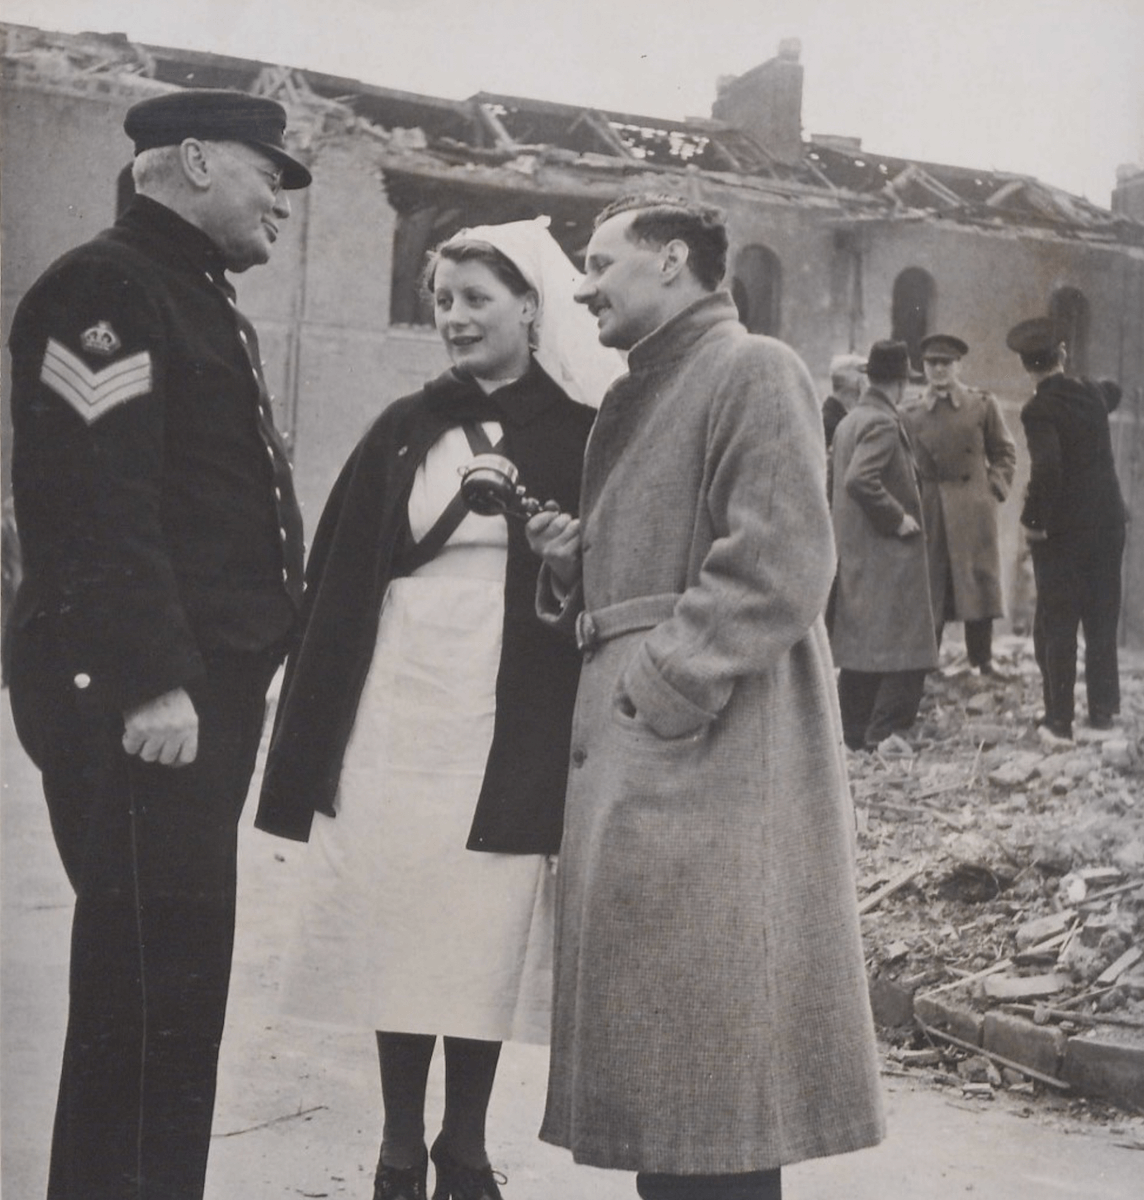 Journalist Vaughan-Thomas, Pensioner J. J. Jones and a nurse in the aftermath of the bombing